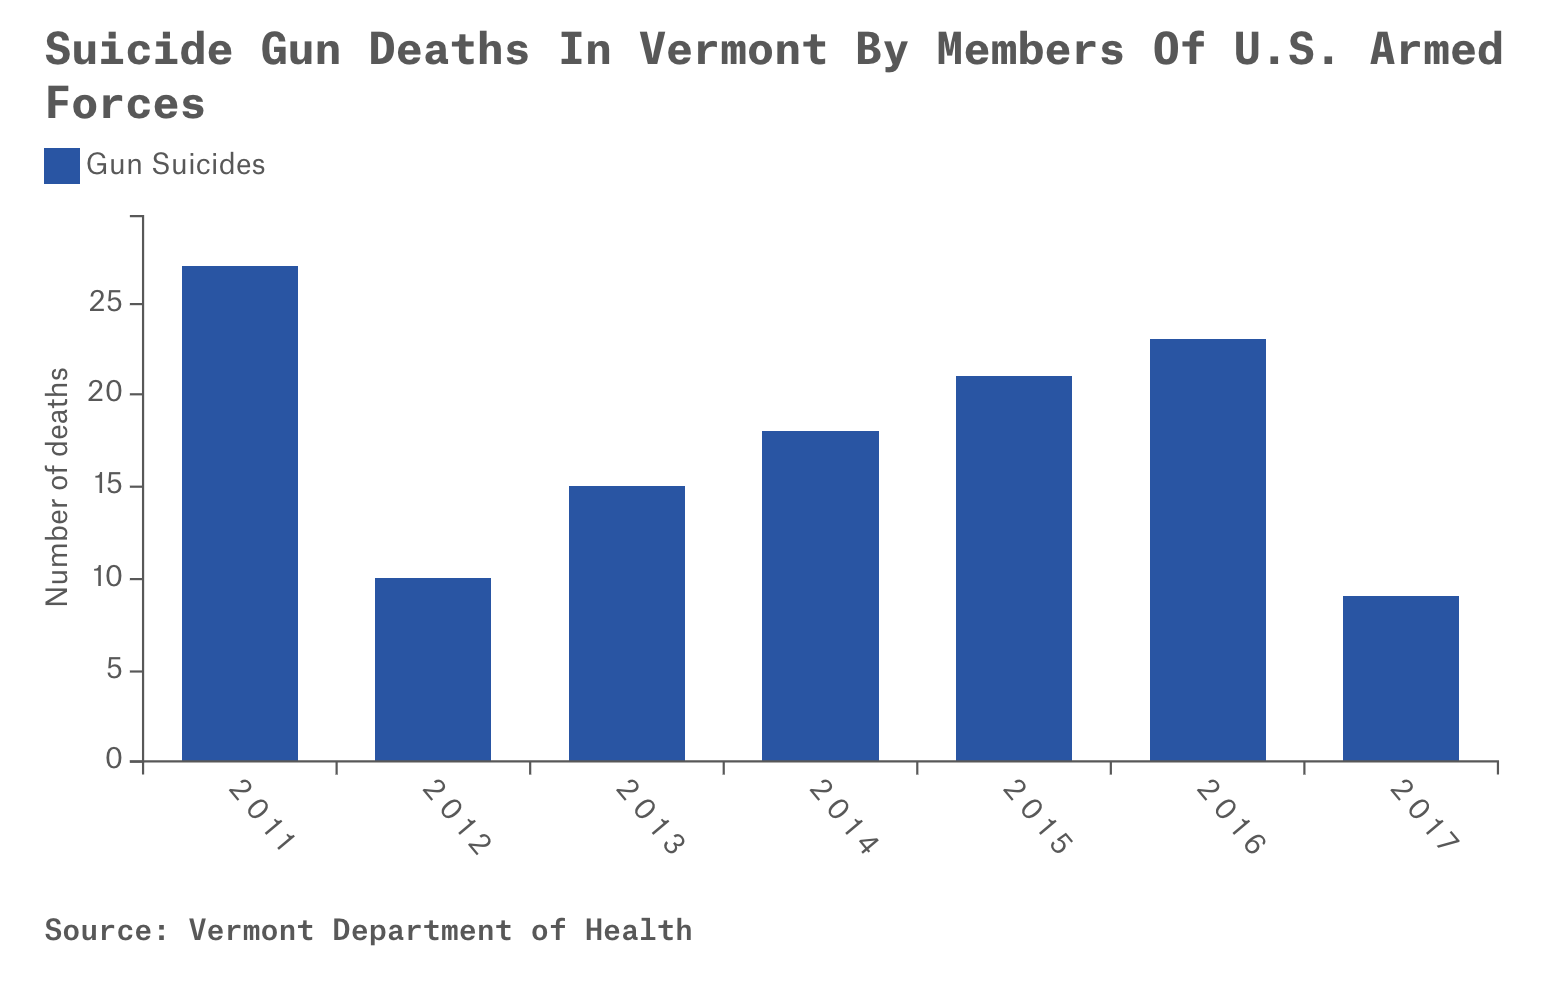 Gunshots Project Update: Takeaways From 2017 Gun Deaths Data